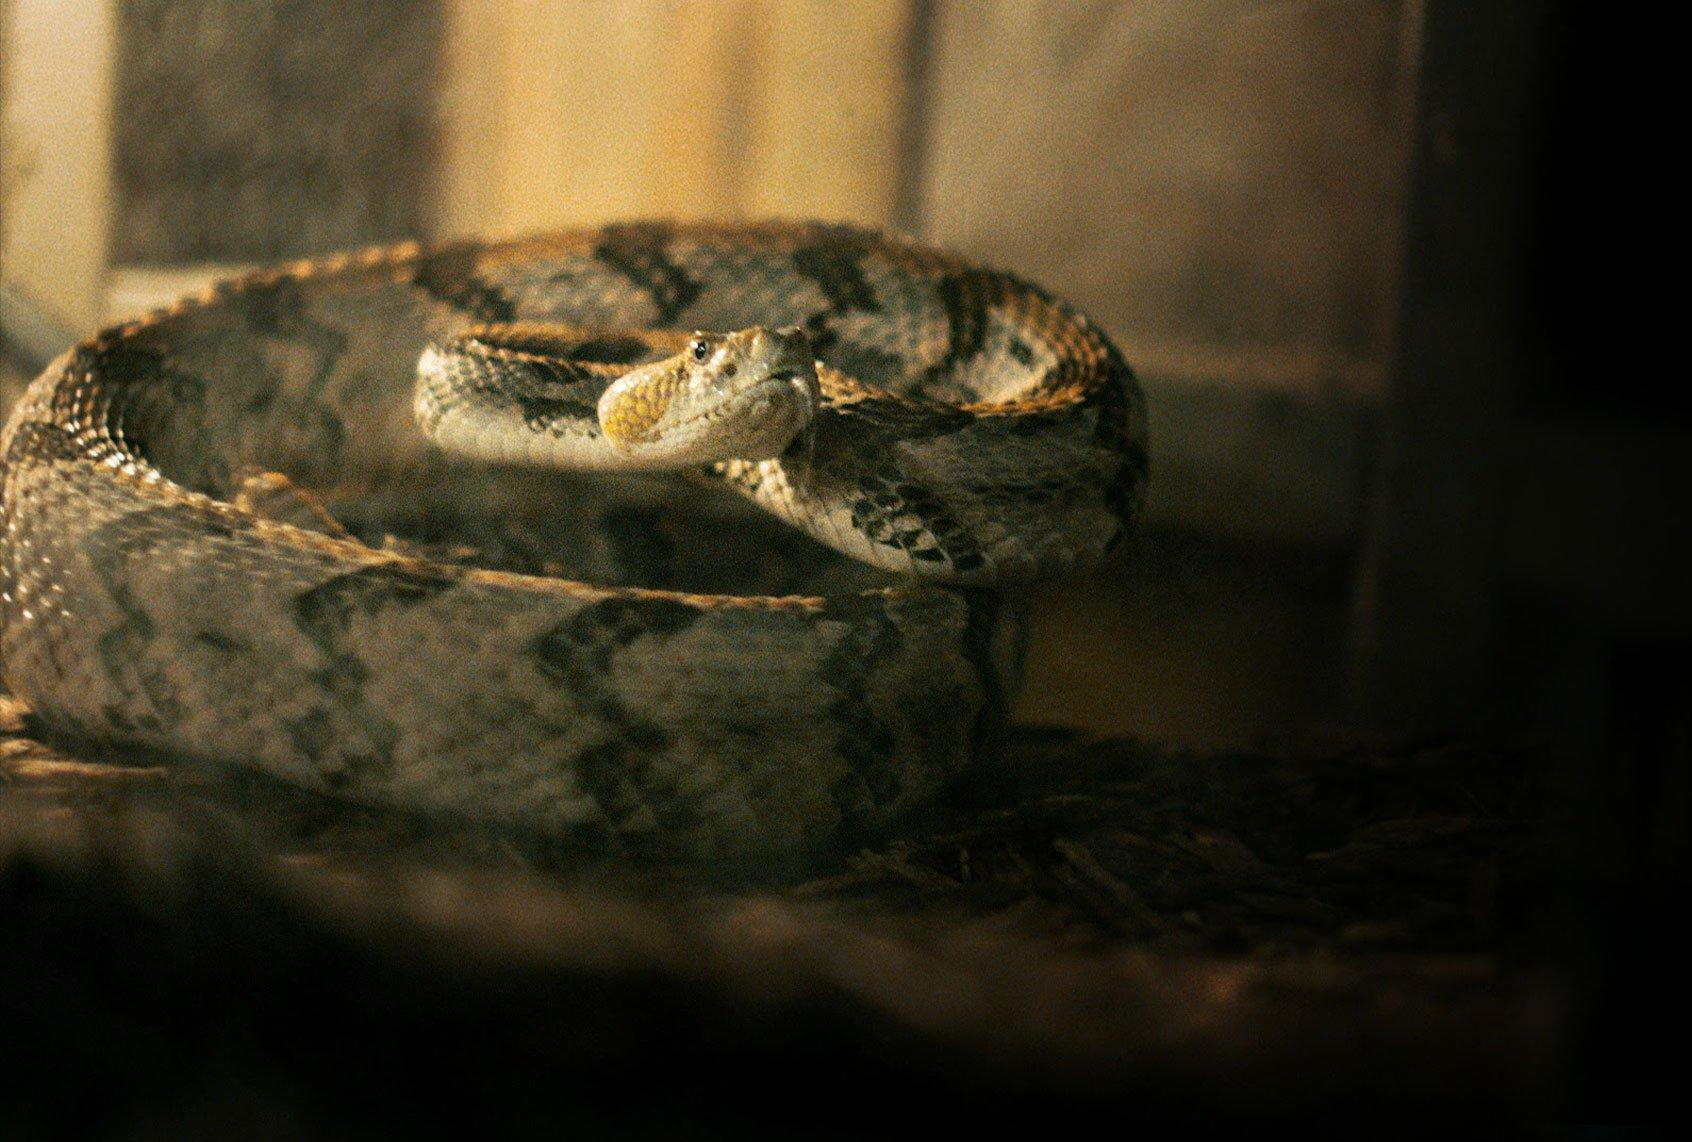 Appalachian Pentecostal Snake Handlers Increasingly Look to Doctors for Help With Snake Bites After Several High-Profile Deaths